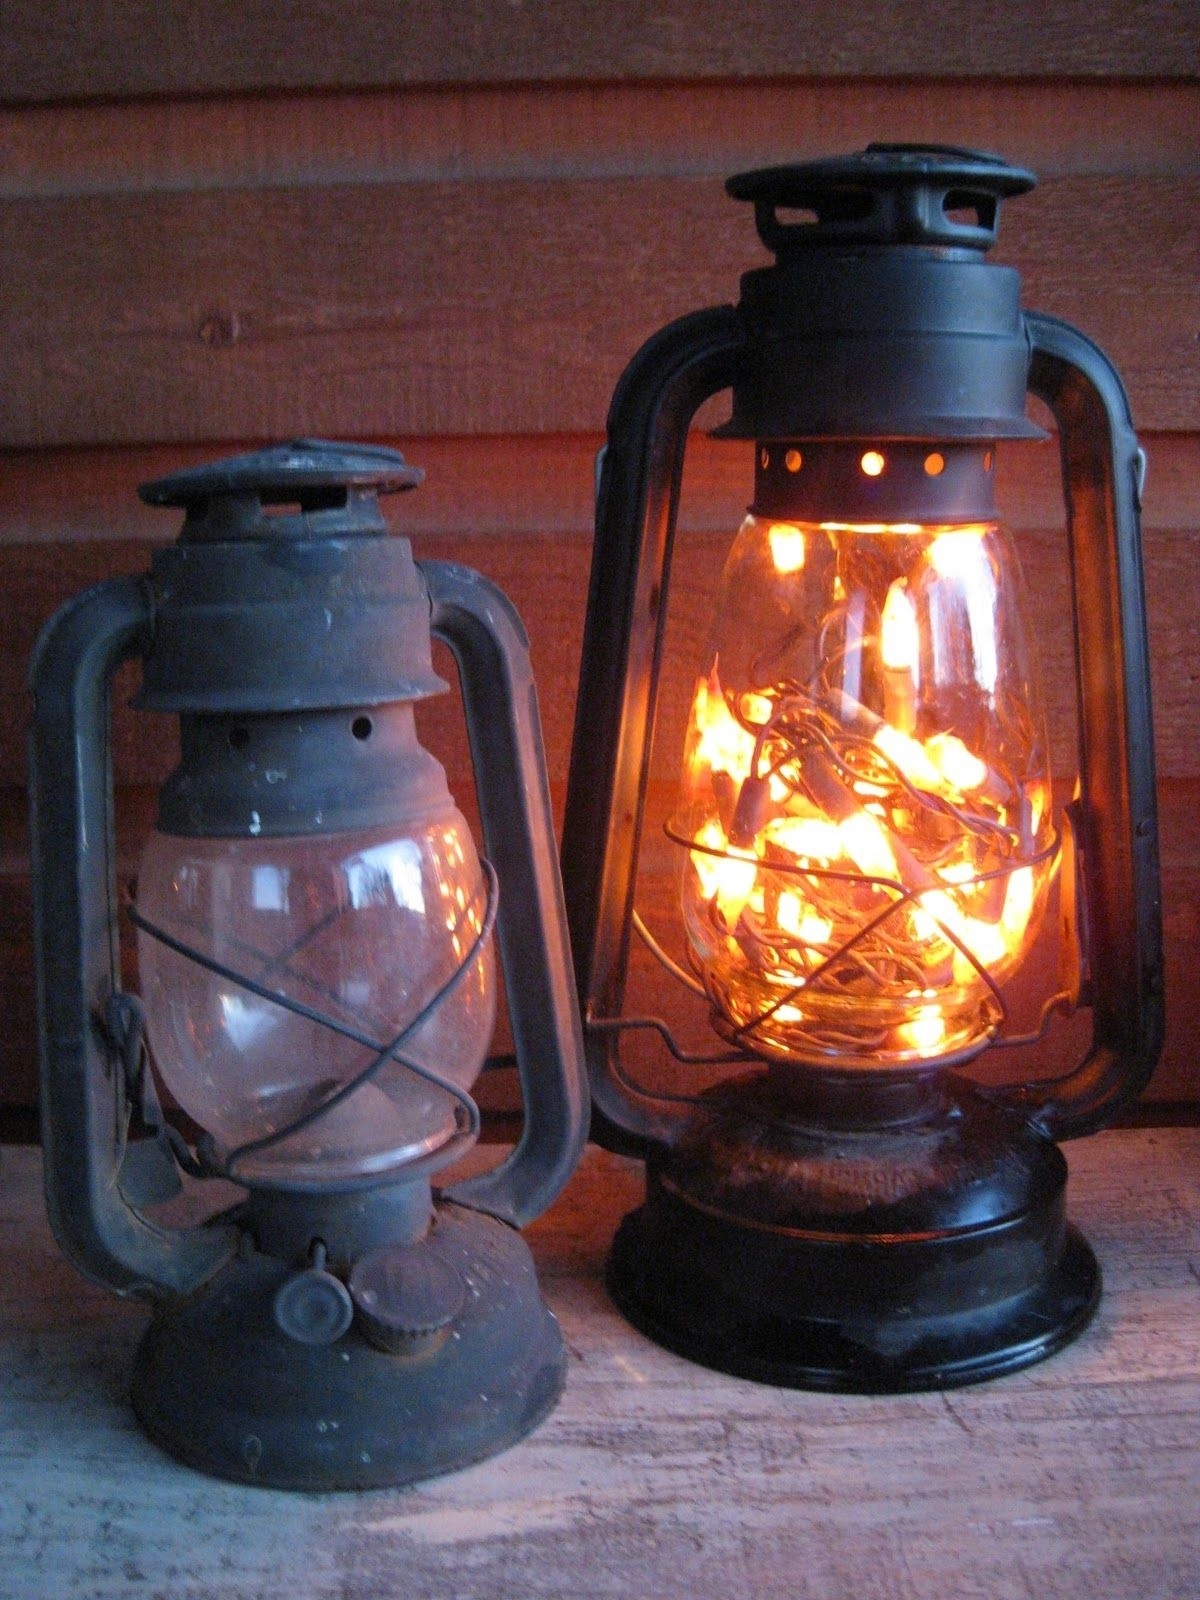 Decorative Outdoor Kerosene Lanterns Intended For Latest Old Lantern. Battery Opereated Lights Inside. No Plug Needed And (Gallery 6 of 20)